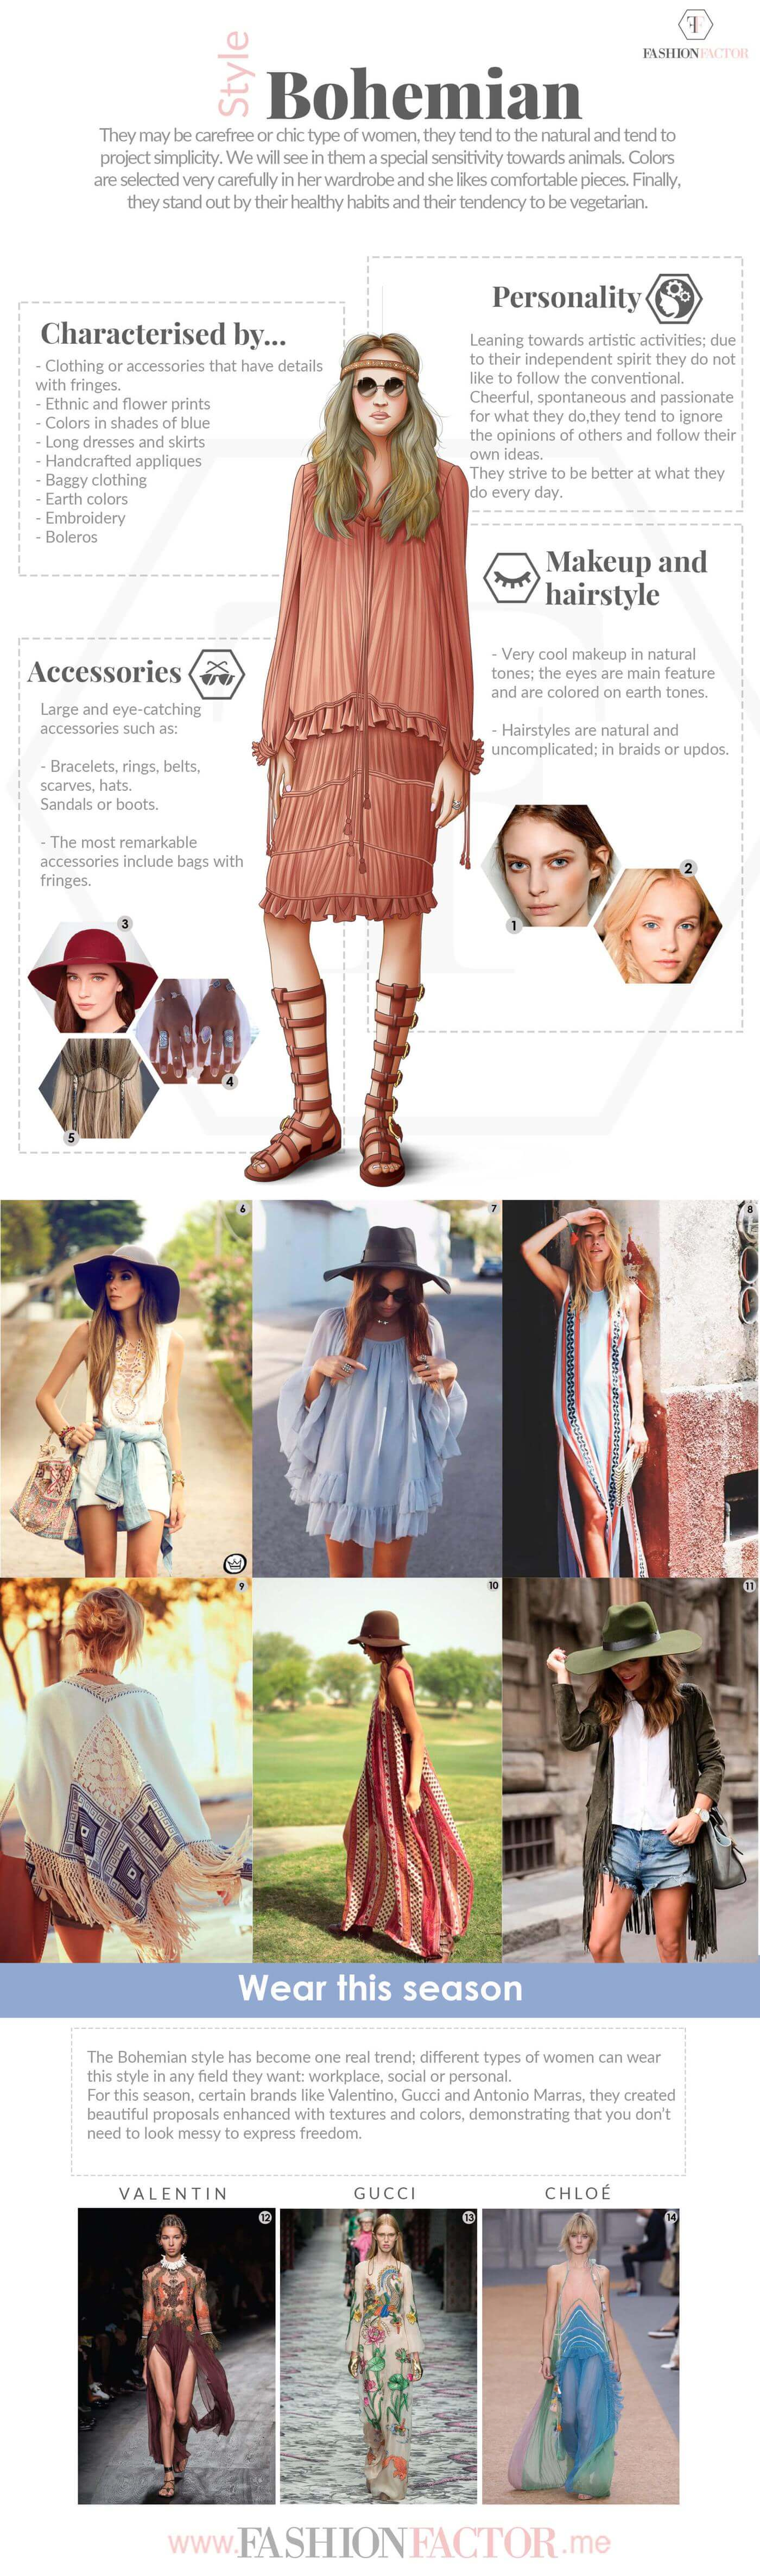 The bohemian style has become one real trend; different types of women can wear this style in any field they want.